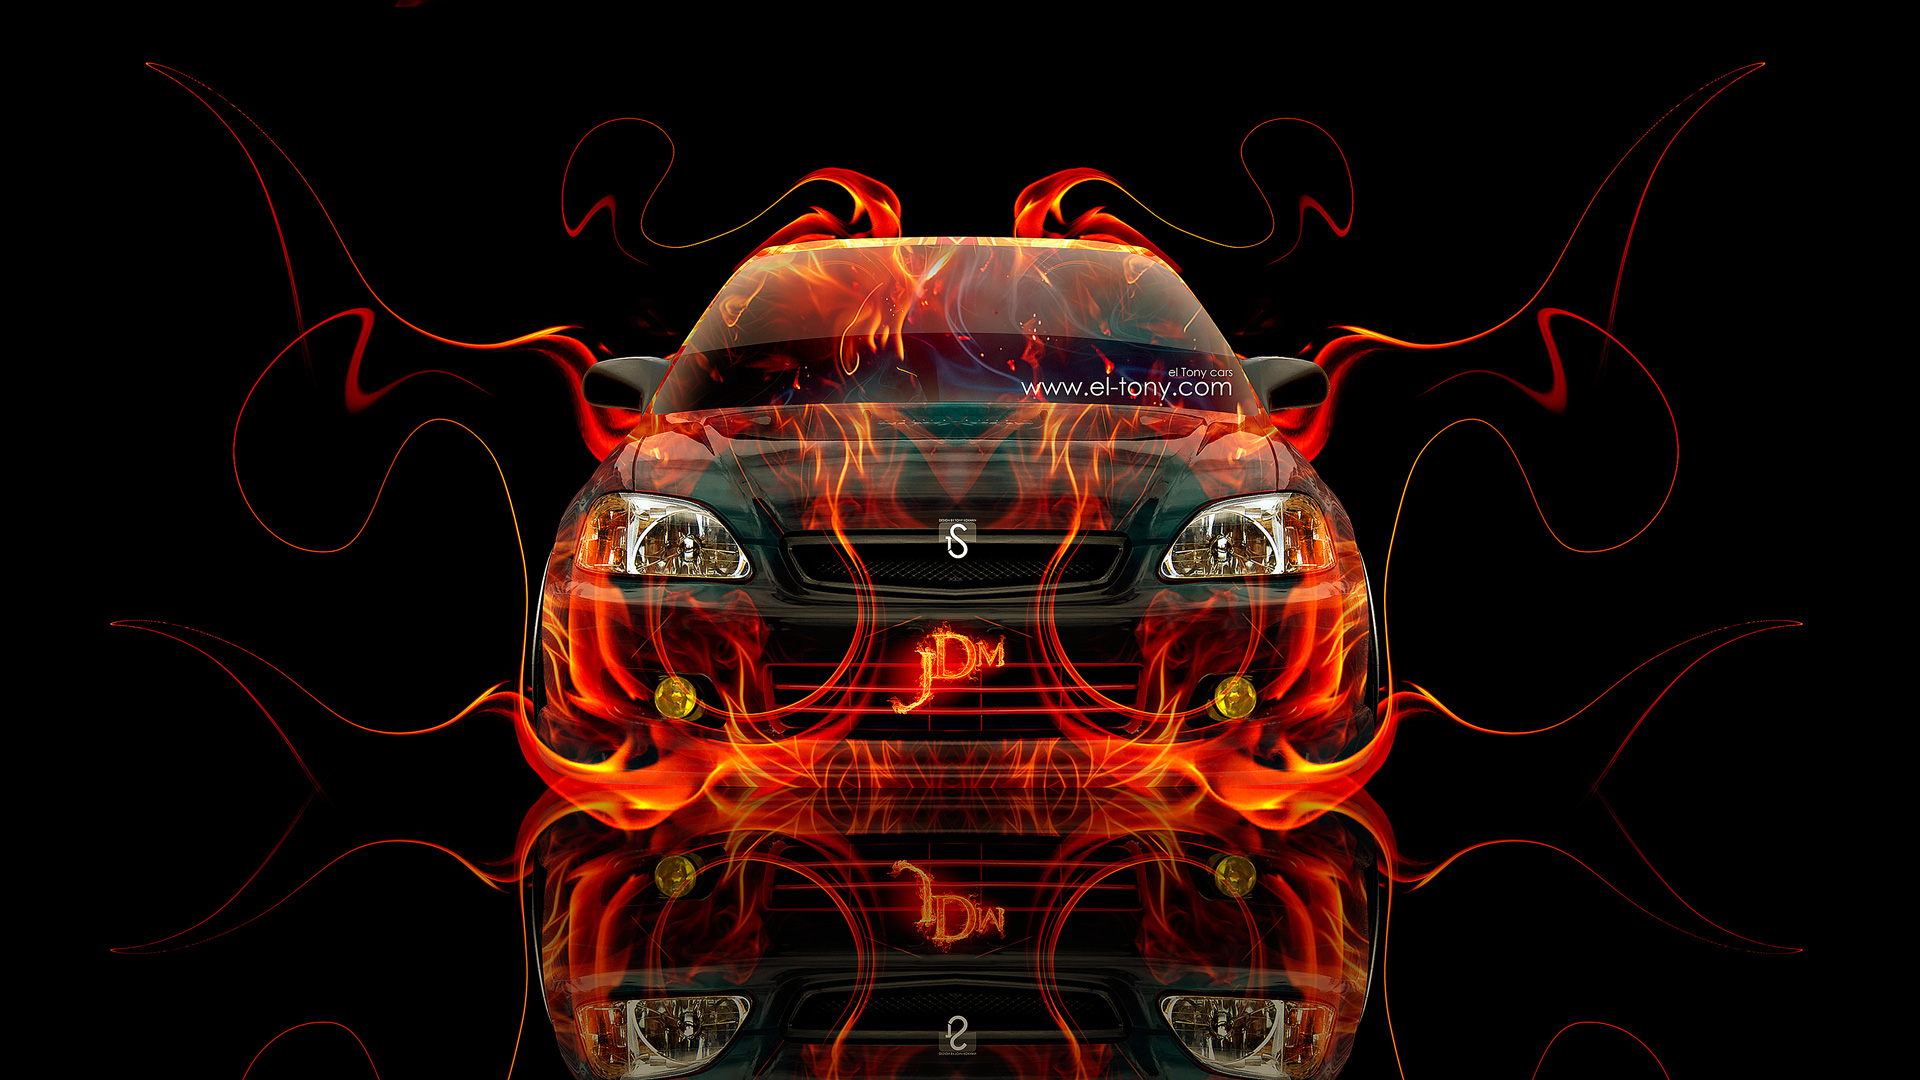 Merveilleux Honda Civic JDM Fire Abstract Car 2014 HD